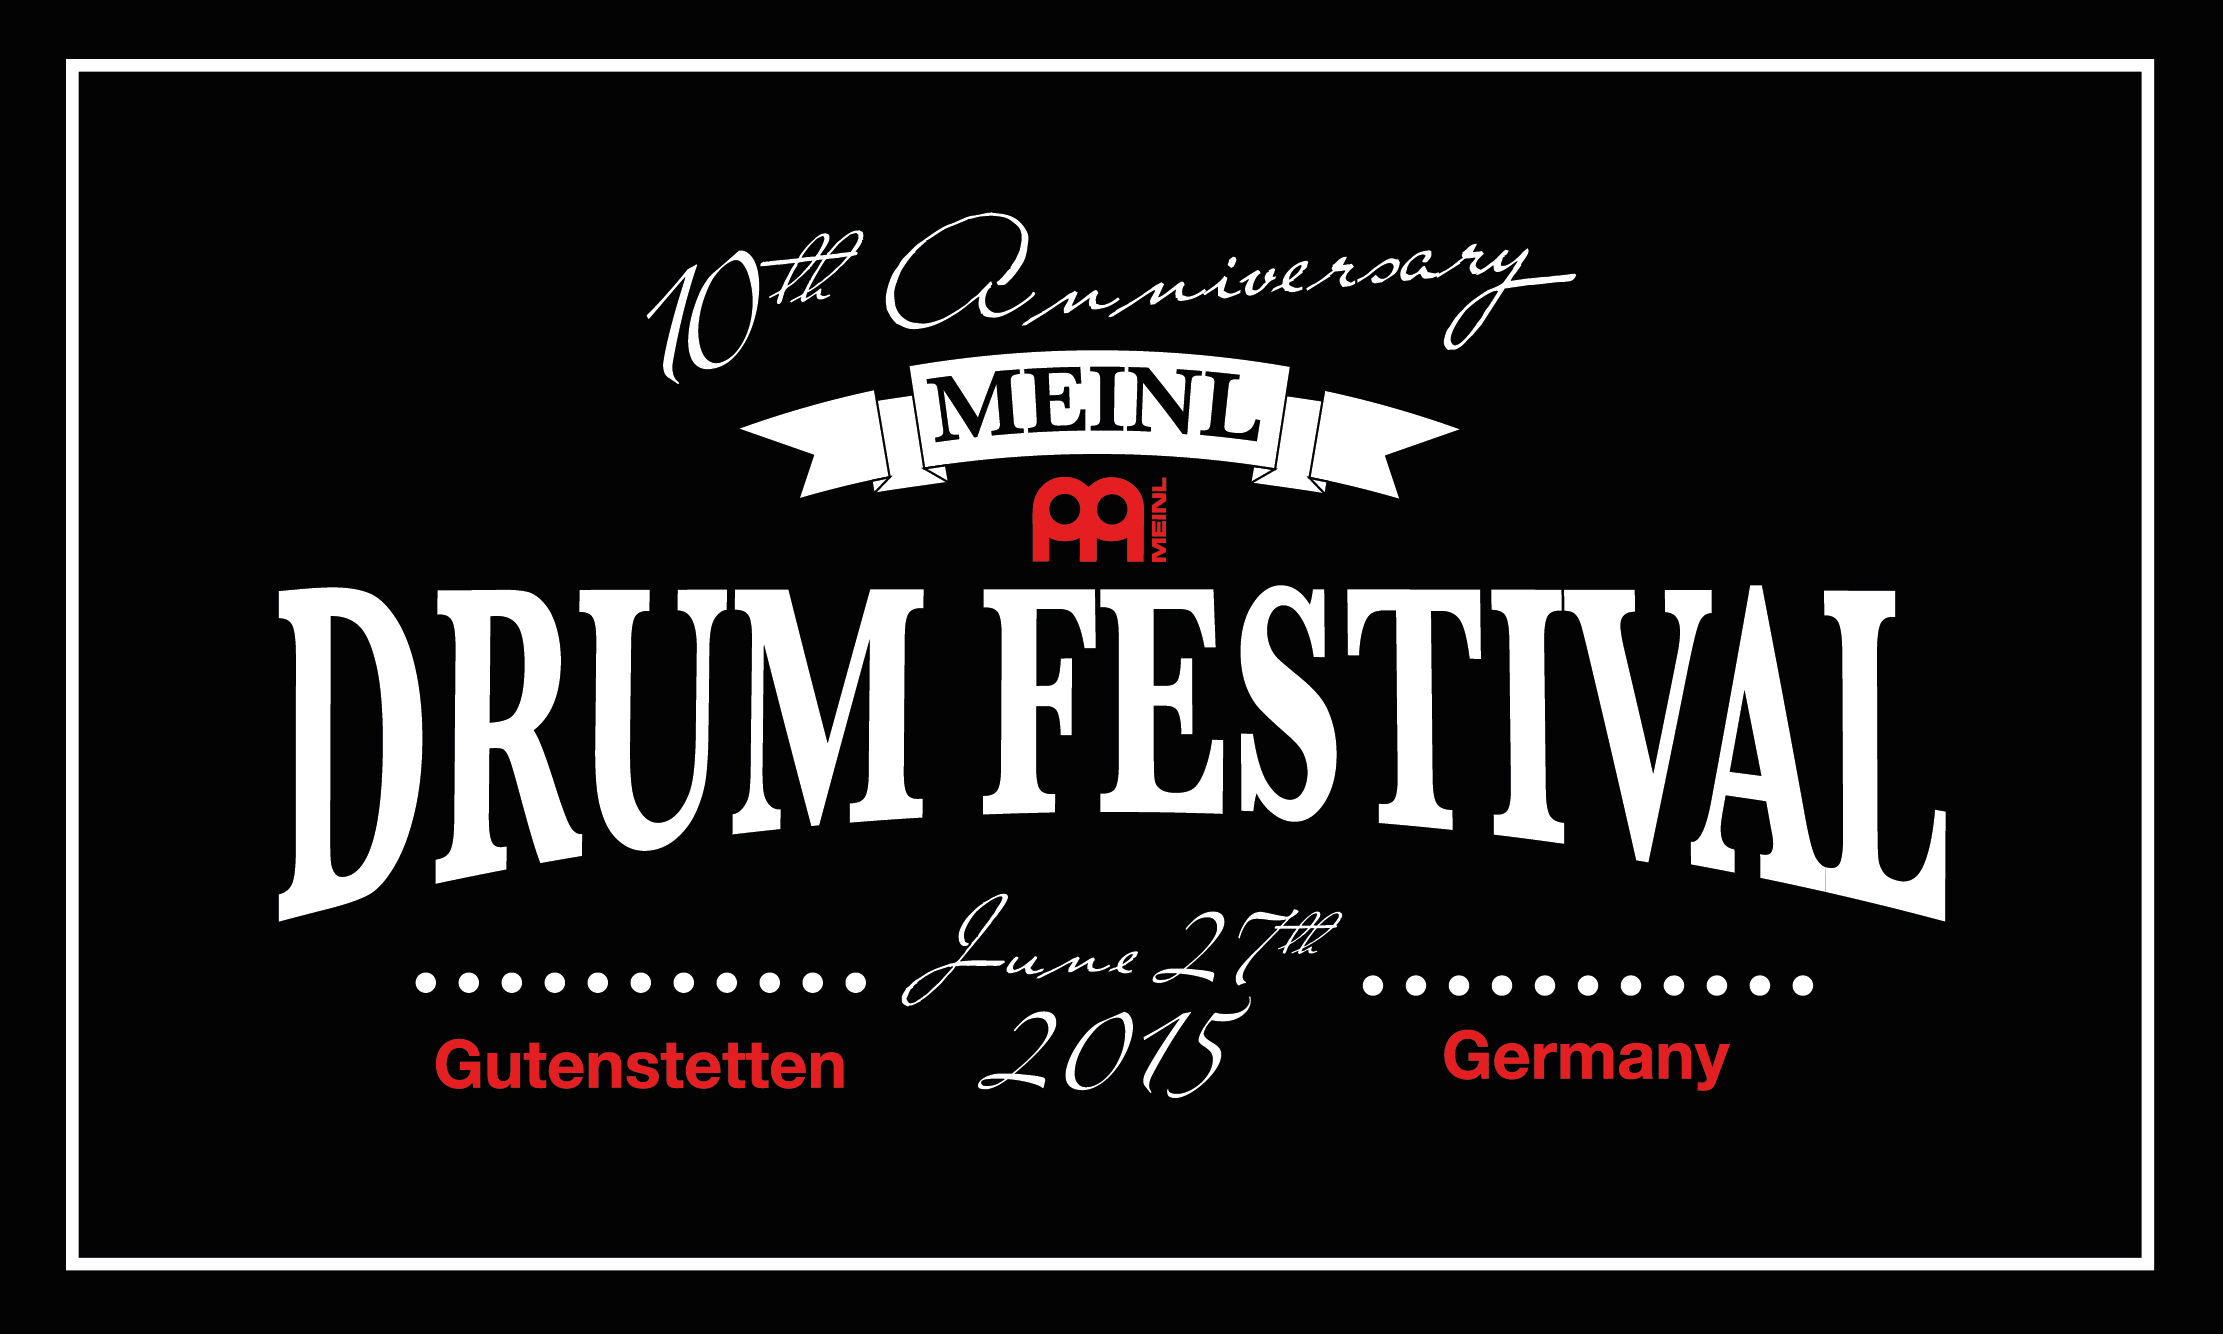 Meinl Drum Festival Donates to Charitable Purposes